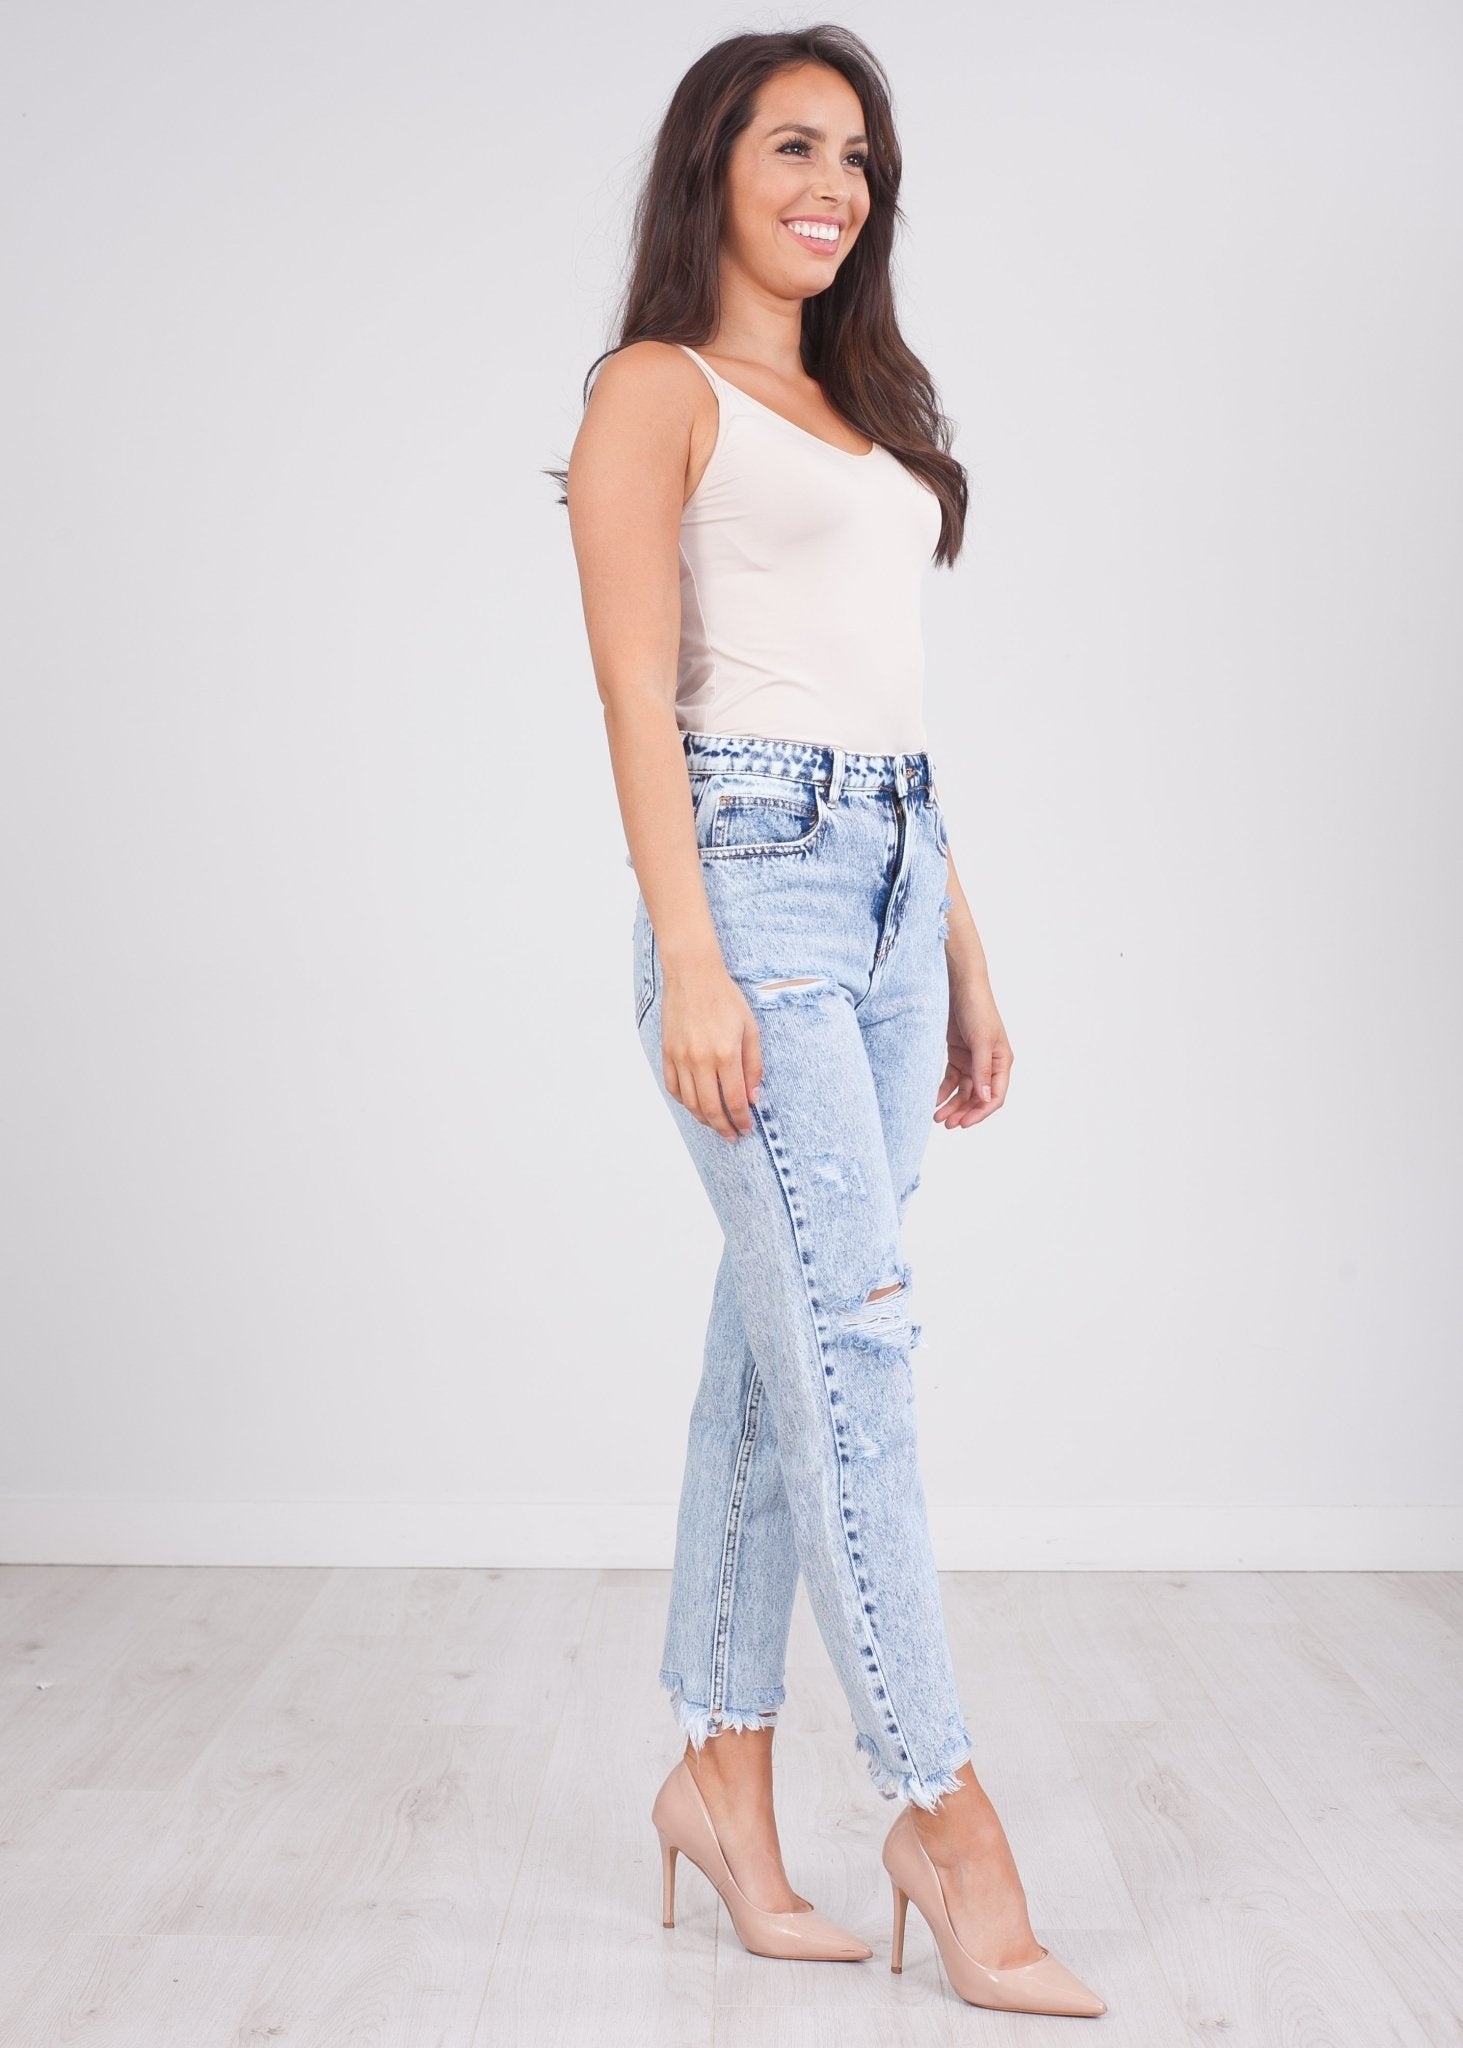 'Laura' Ripped Mom Jeans - The Walk in Wardrobe